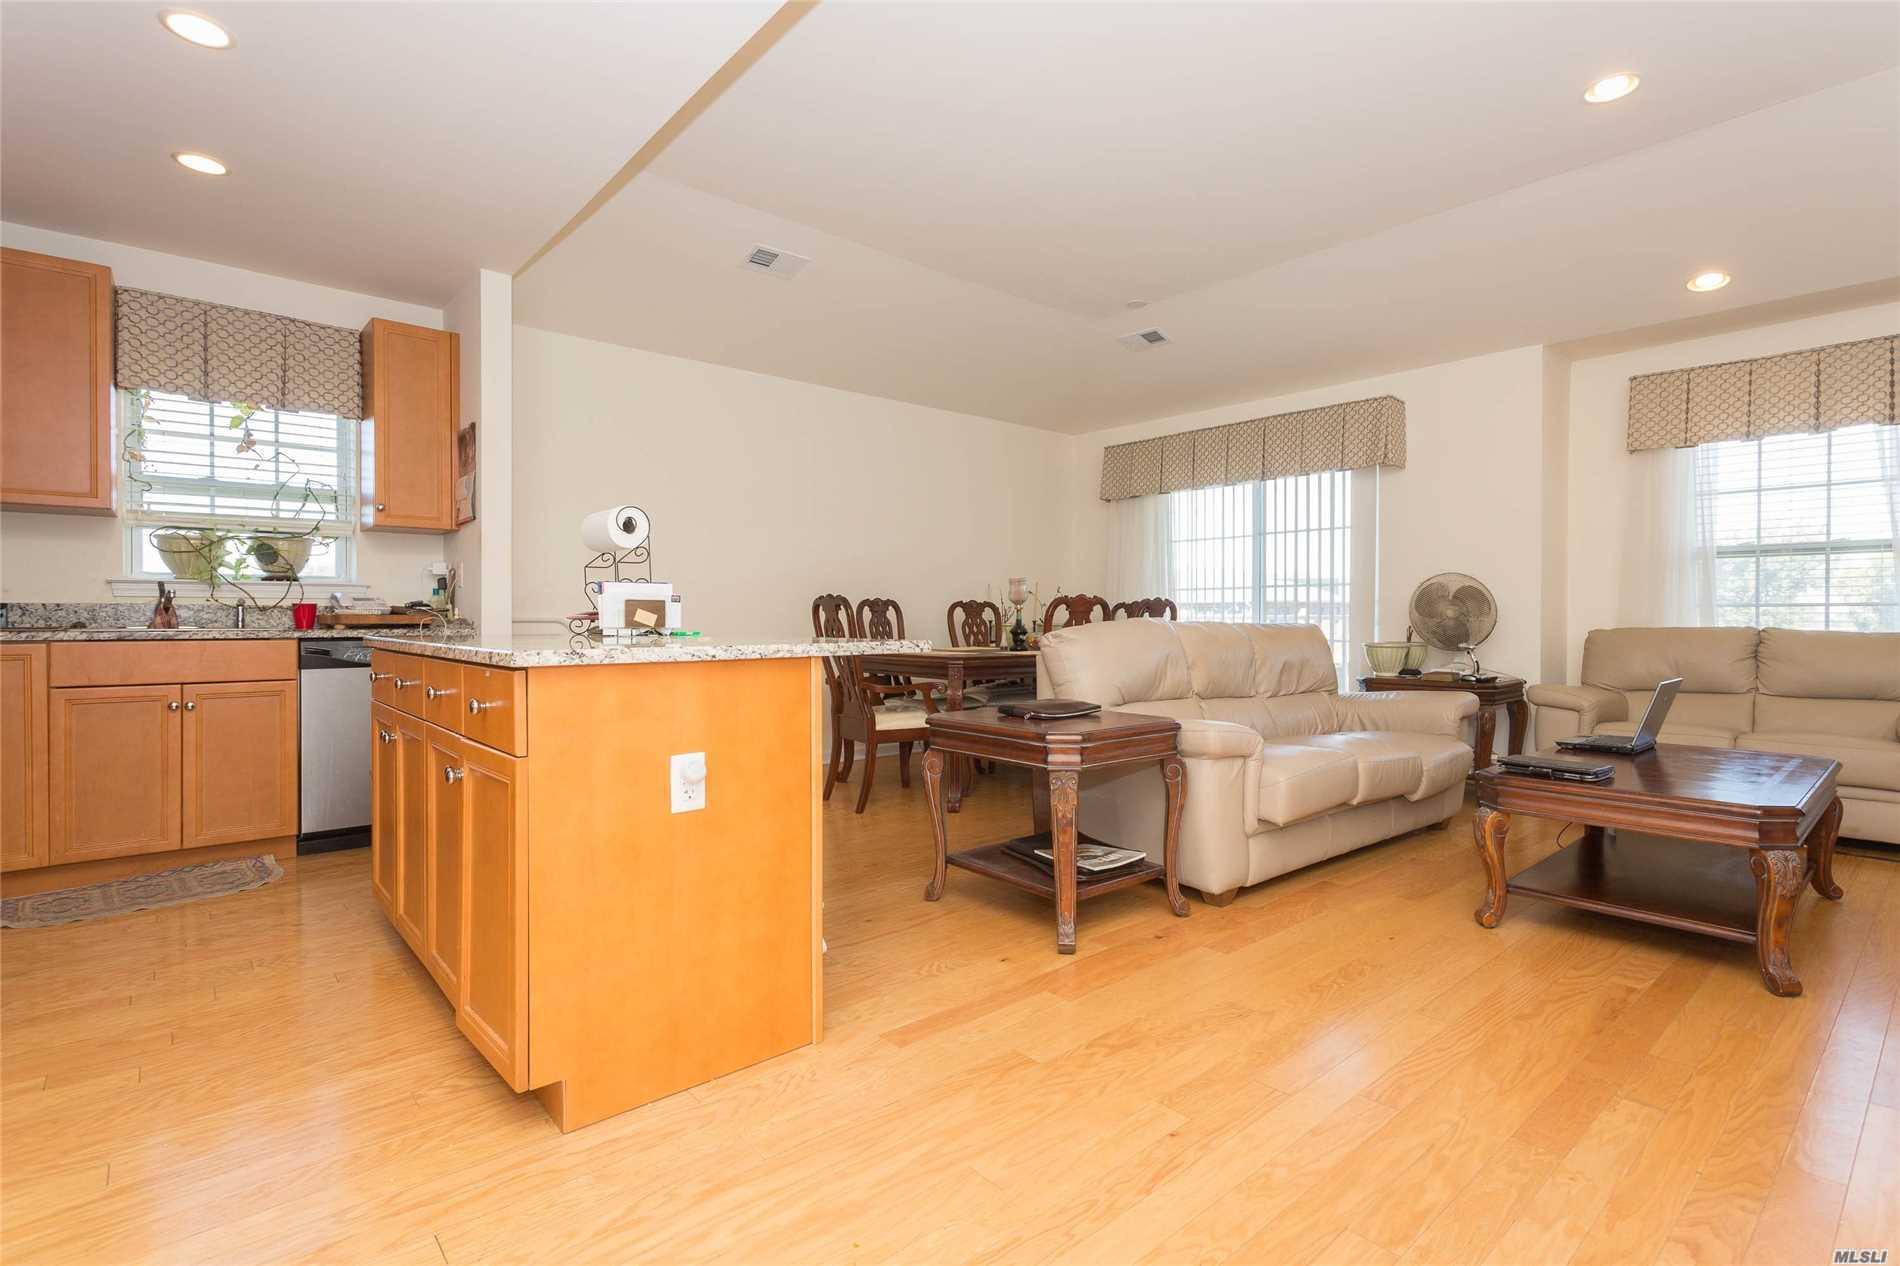 Brick, Top Floor, Spacious 2 Bedroom Condo. Approx. 1278 Sqft. 2 Bath & Terrace. Possible To Convert To 3 Brs. Views Of River, Promenade, Waterfront Park & The Whitestone Bridge. Energy Star Rated. High Ceilings, Hdwd Flrs., Kit W/ Granite Counter Tops, Cac. Quiet Neighborhood. Access To 6 Acre Waterfront Park. Pvt Setting, Landscaped Grounds & N/Hood Video Surveillance System. 2 Parking Spaces Incl. 421 A Tax Abatement Discount Reduces Taxes To $686. Near Schools, Transportation & Macneil Park.